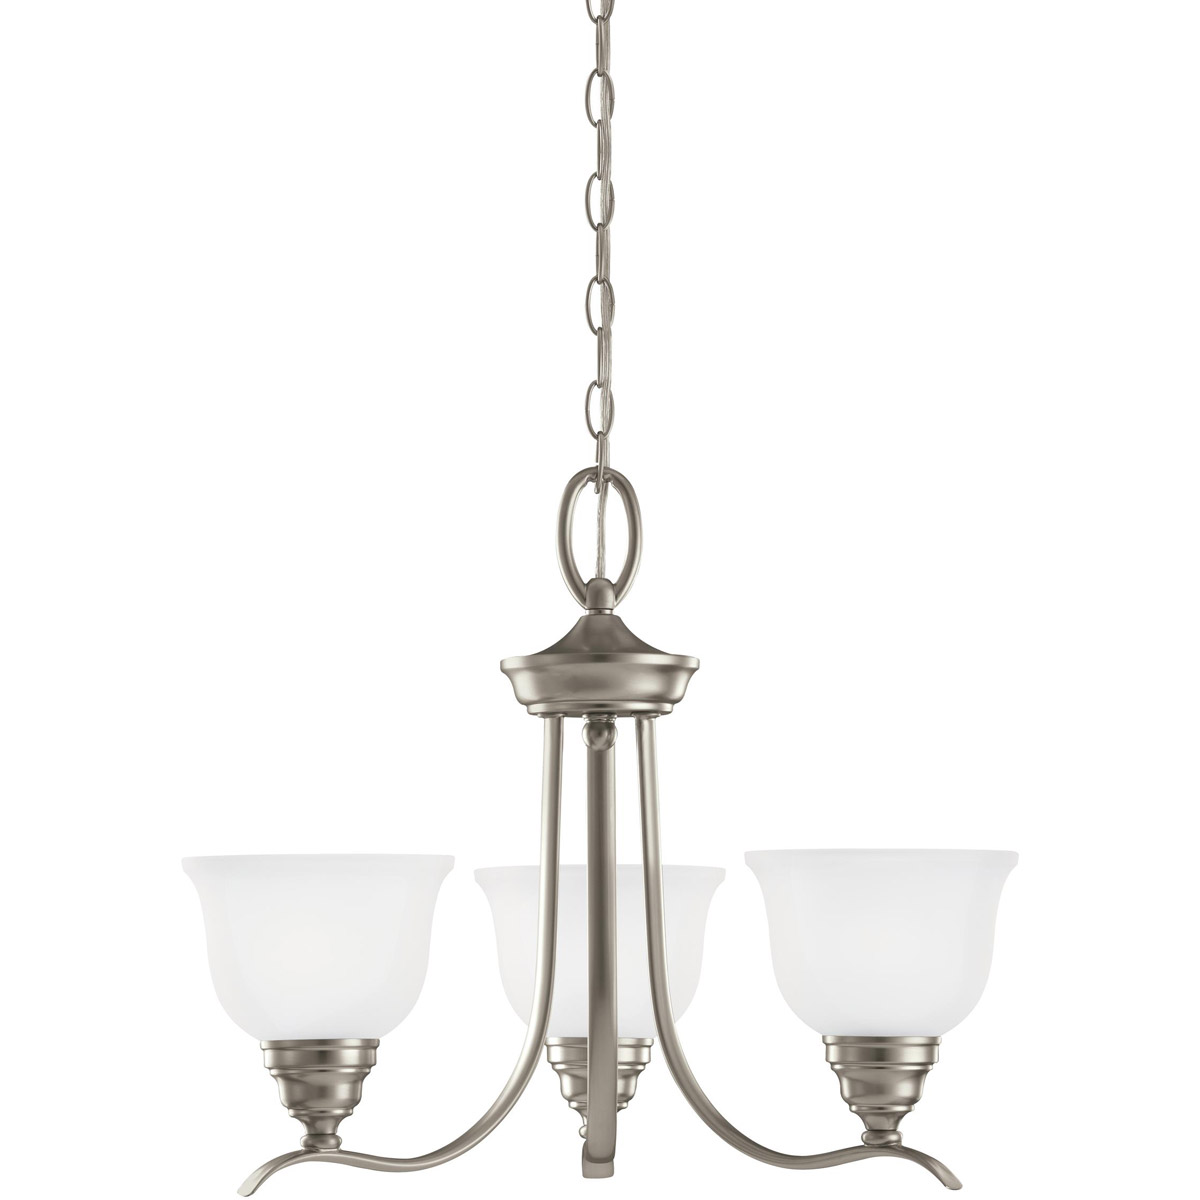 Sea Gull 31625-962 Wheaton 3 Light 22 inch Brushed Nickel Chandelier Ceiling Light in Standard photo